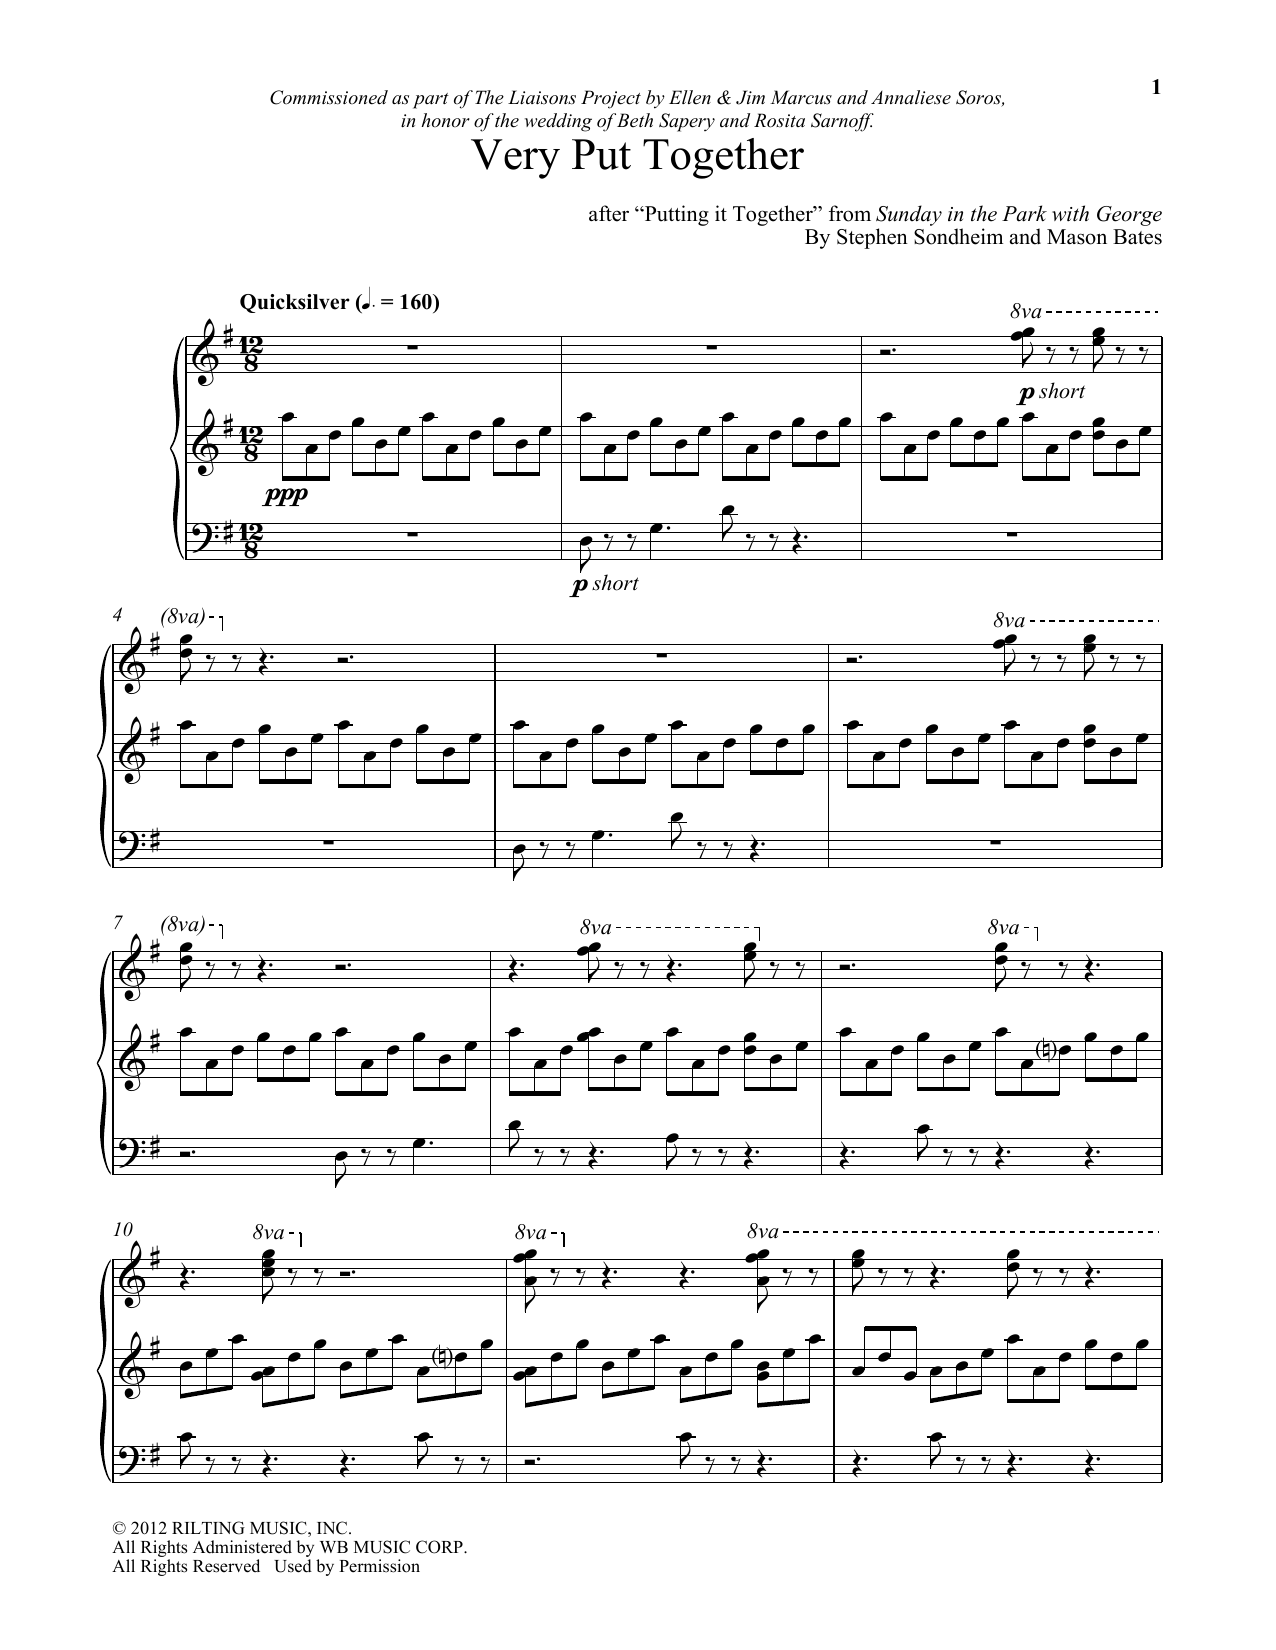 Download Stephen Sondheim 'Very Put Together (arr. Mason Bates)' Digital Sheet Music Notes & Chords and start playing in minutes